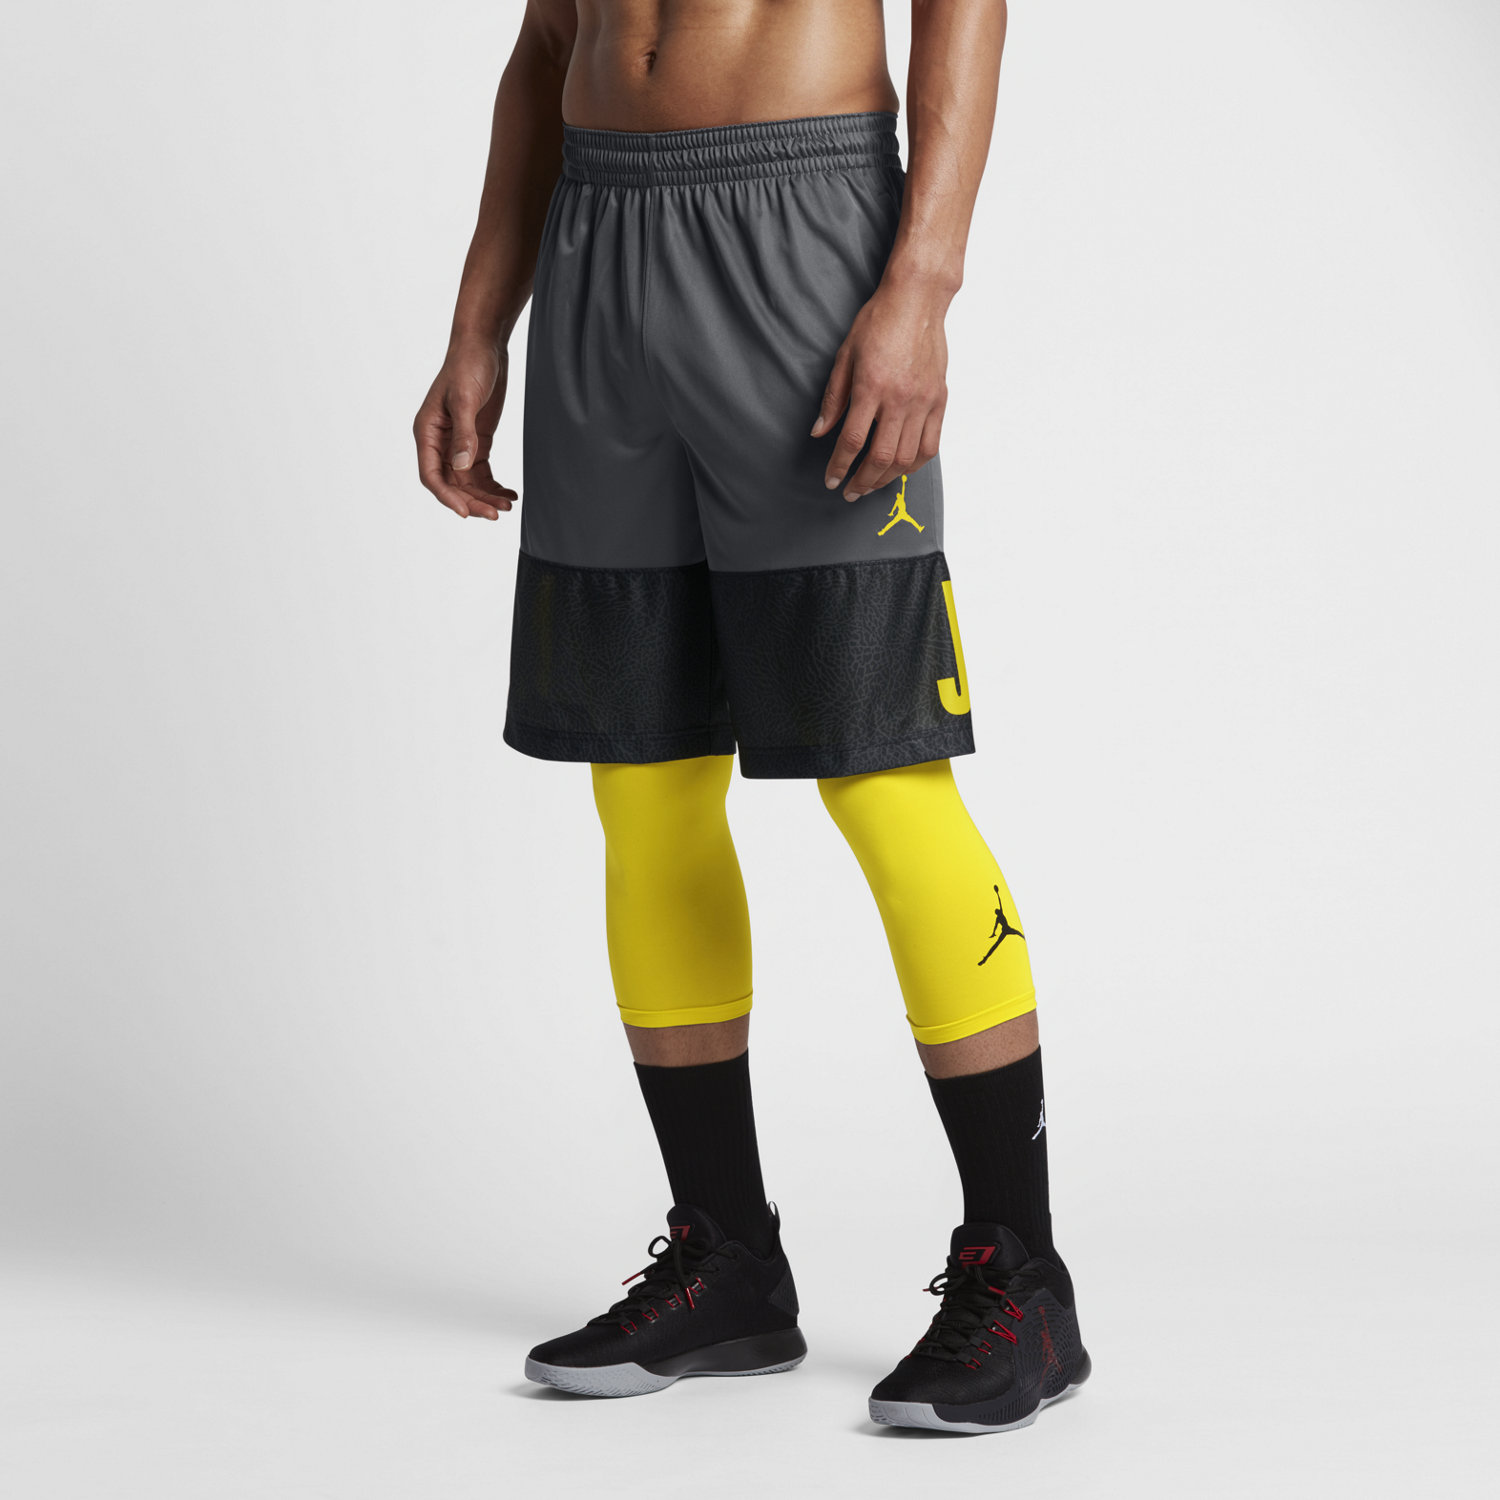 Mens basketball shorts on sale free shipping - Mens Basketball Shorts On Sale Free Shipping 45